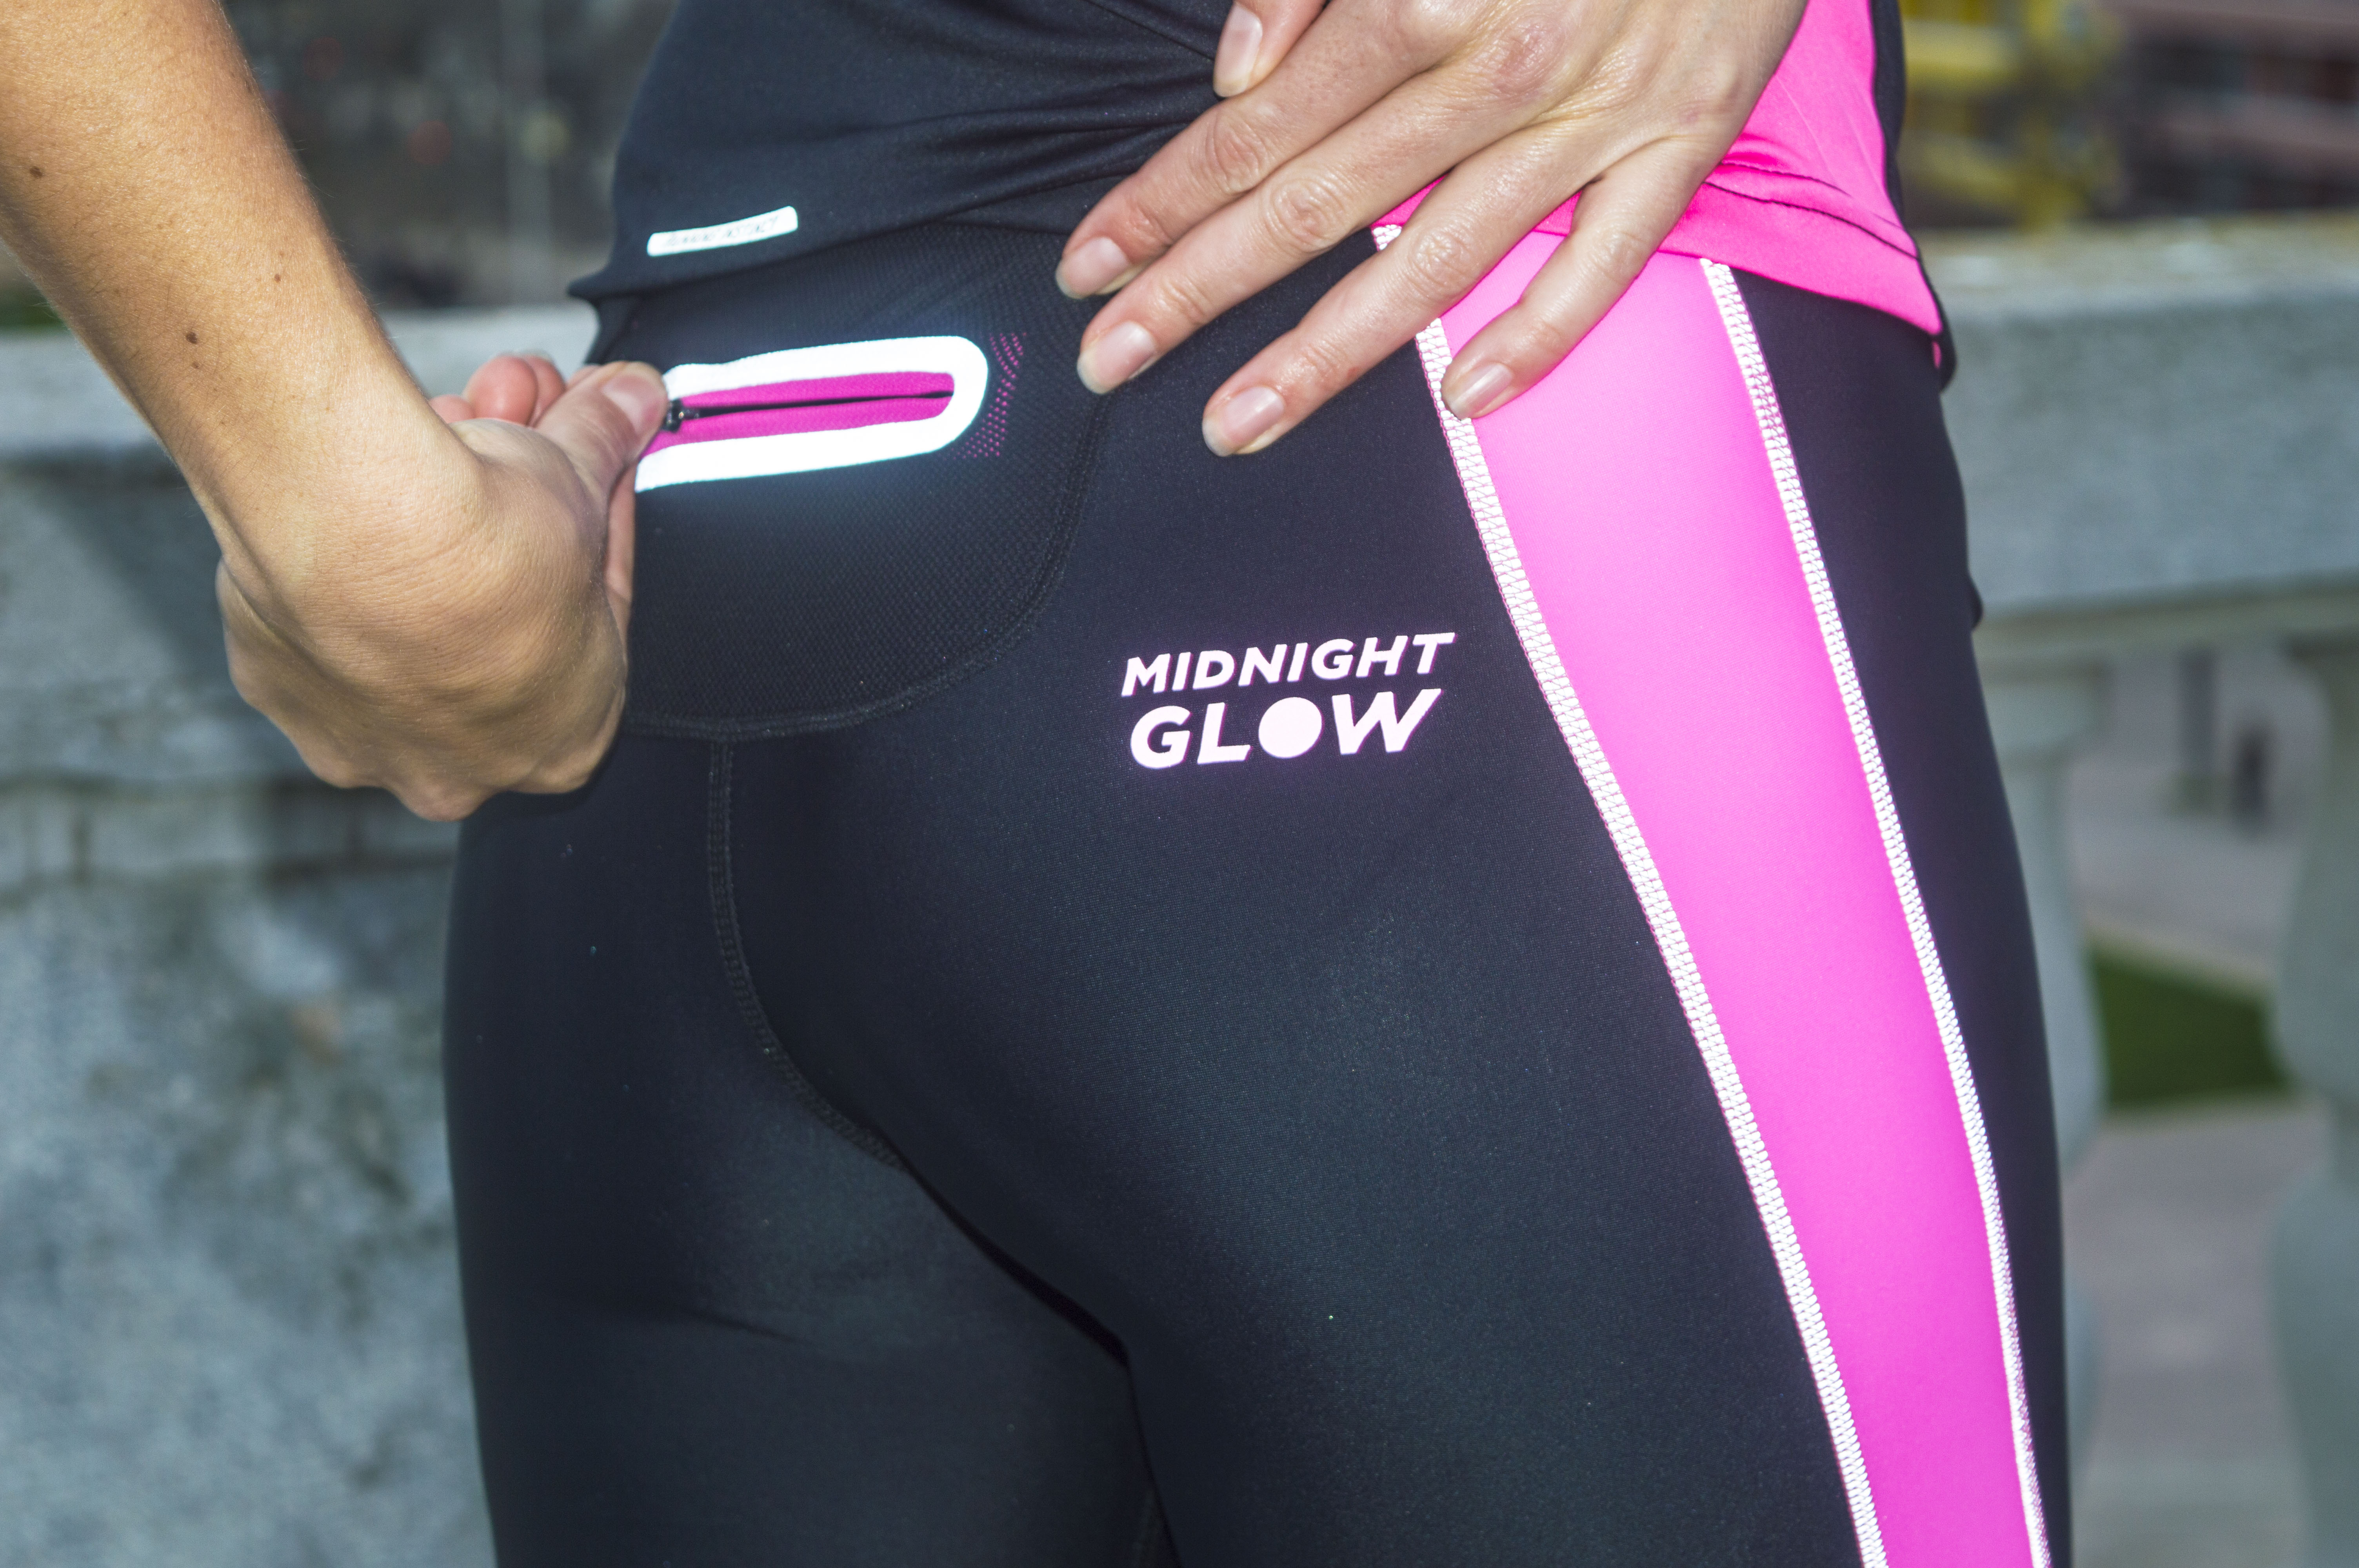 Outpace  Midnight Glow Correr na Cidade (46).jpg